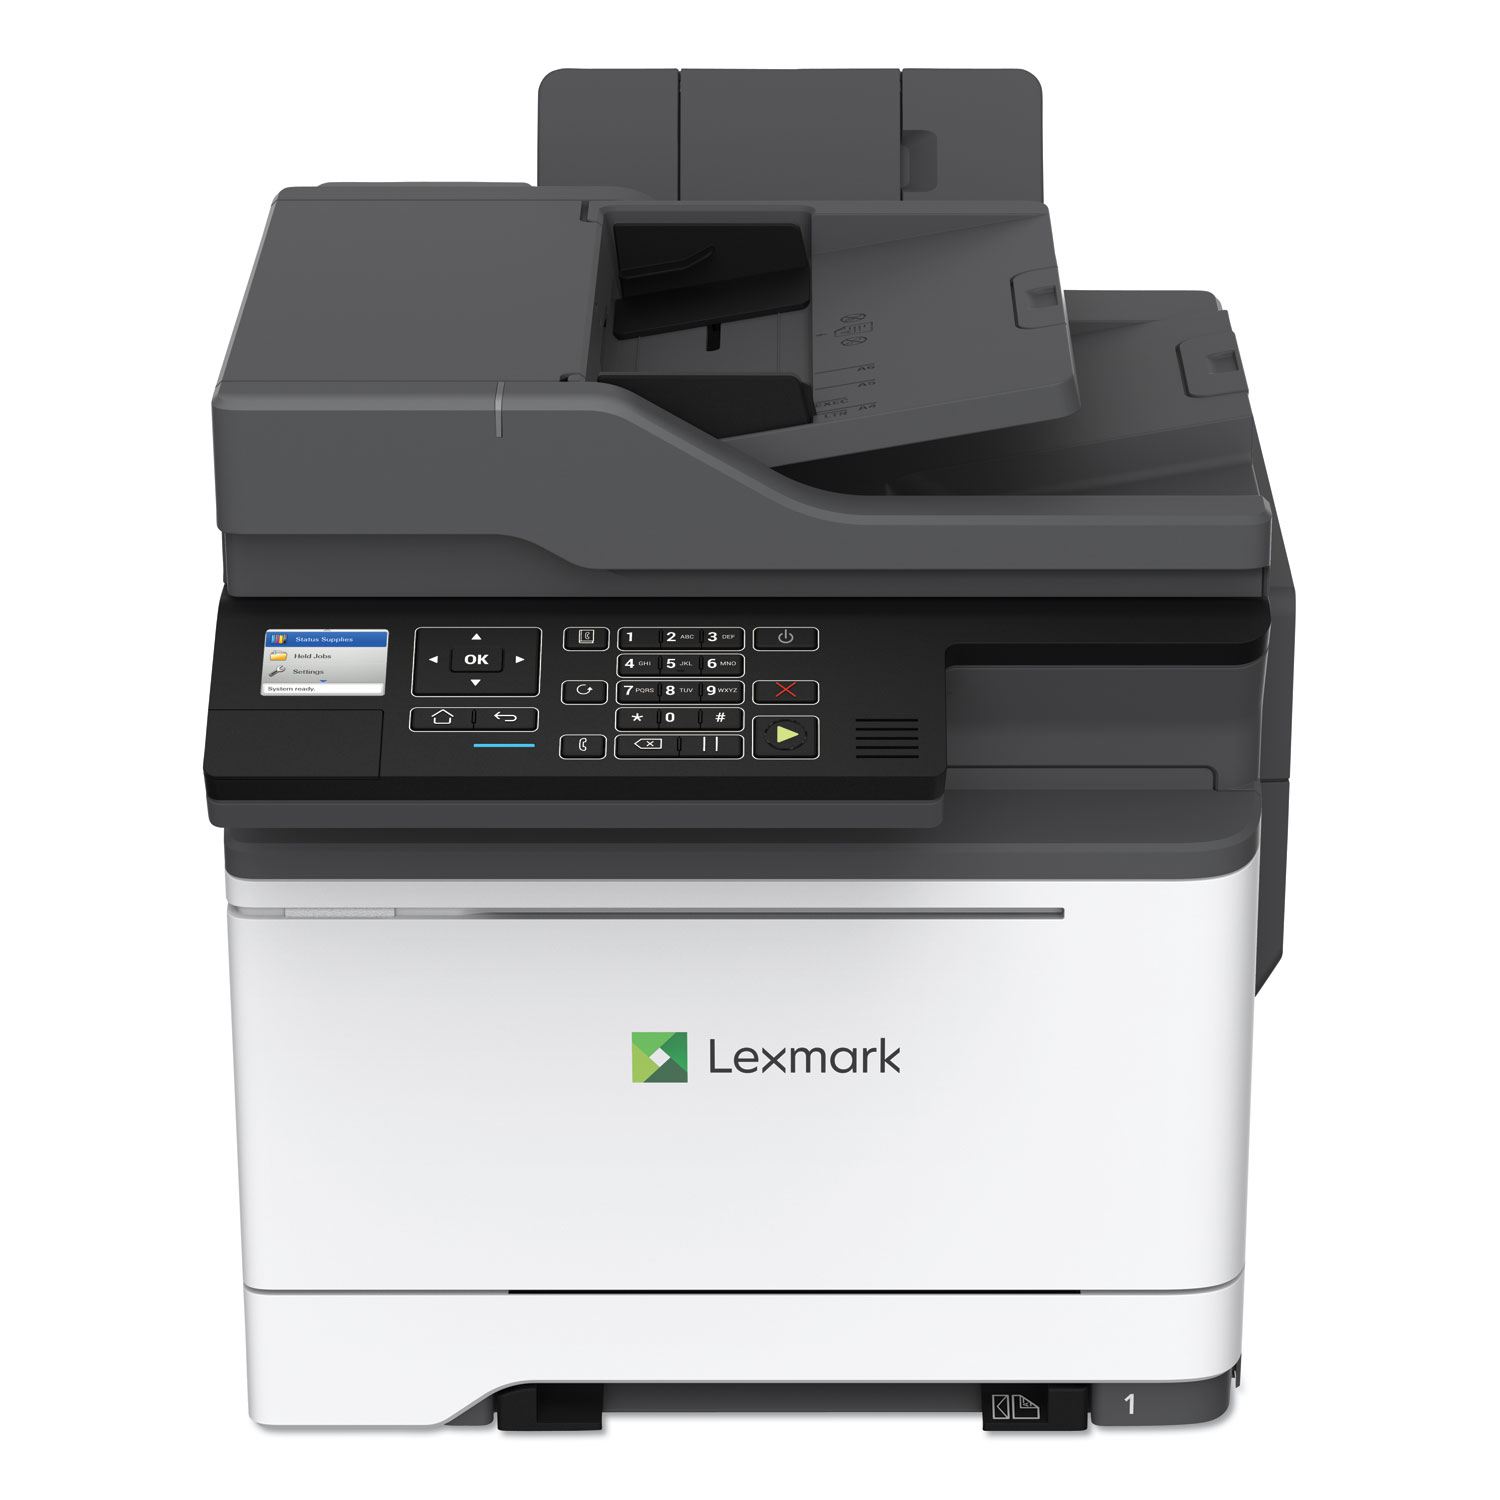 MC2425adw Printer, Copy/Fax/Print/Scan